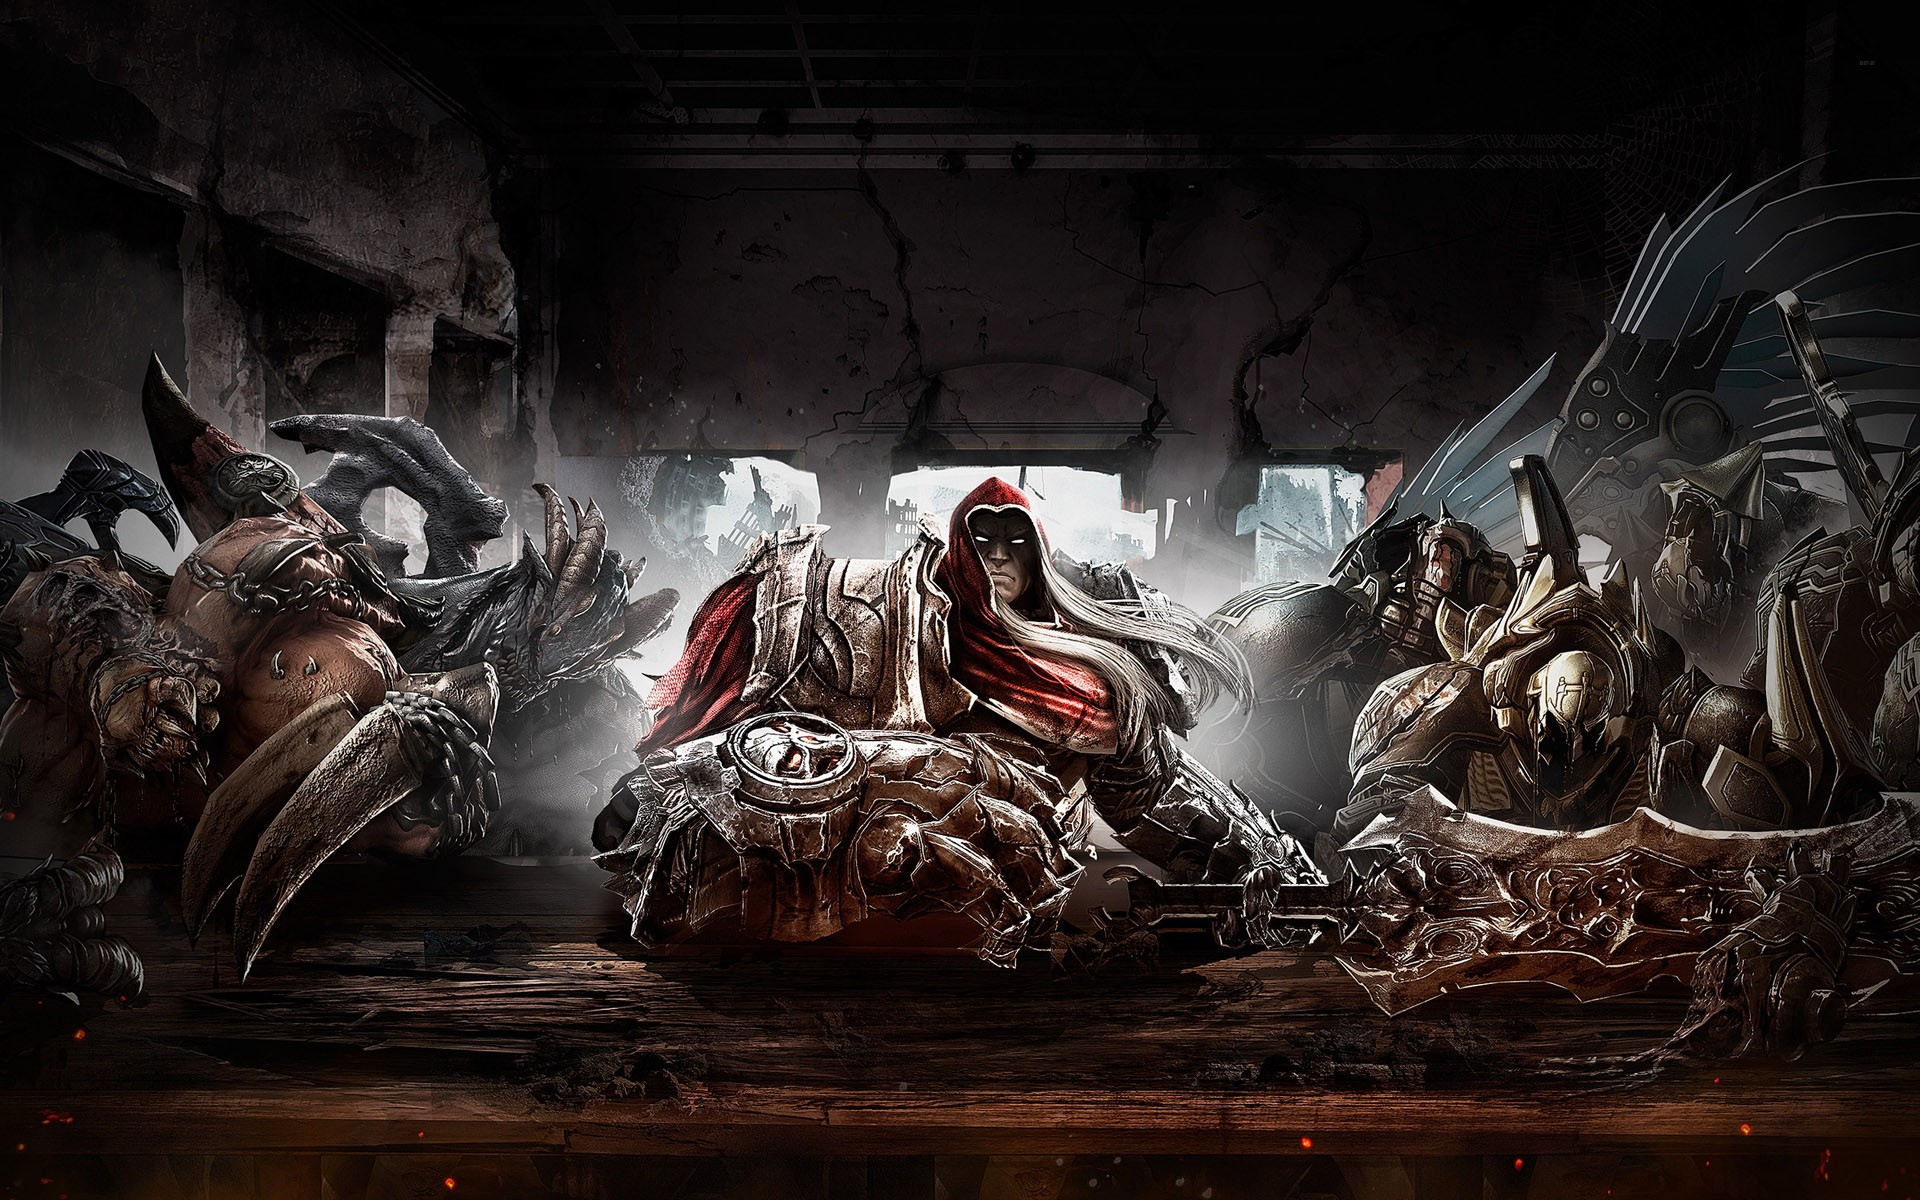 Darksiders wallpaper   718360 1920x1200